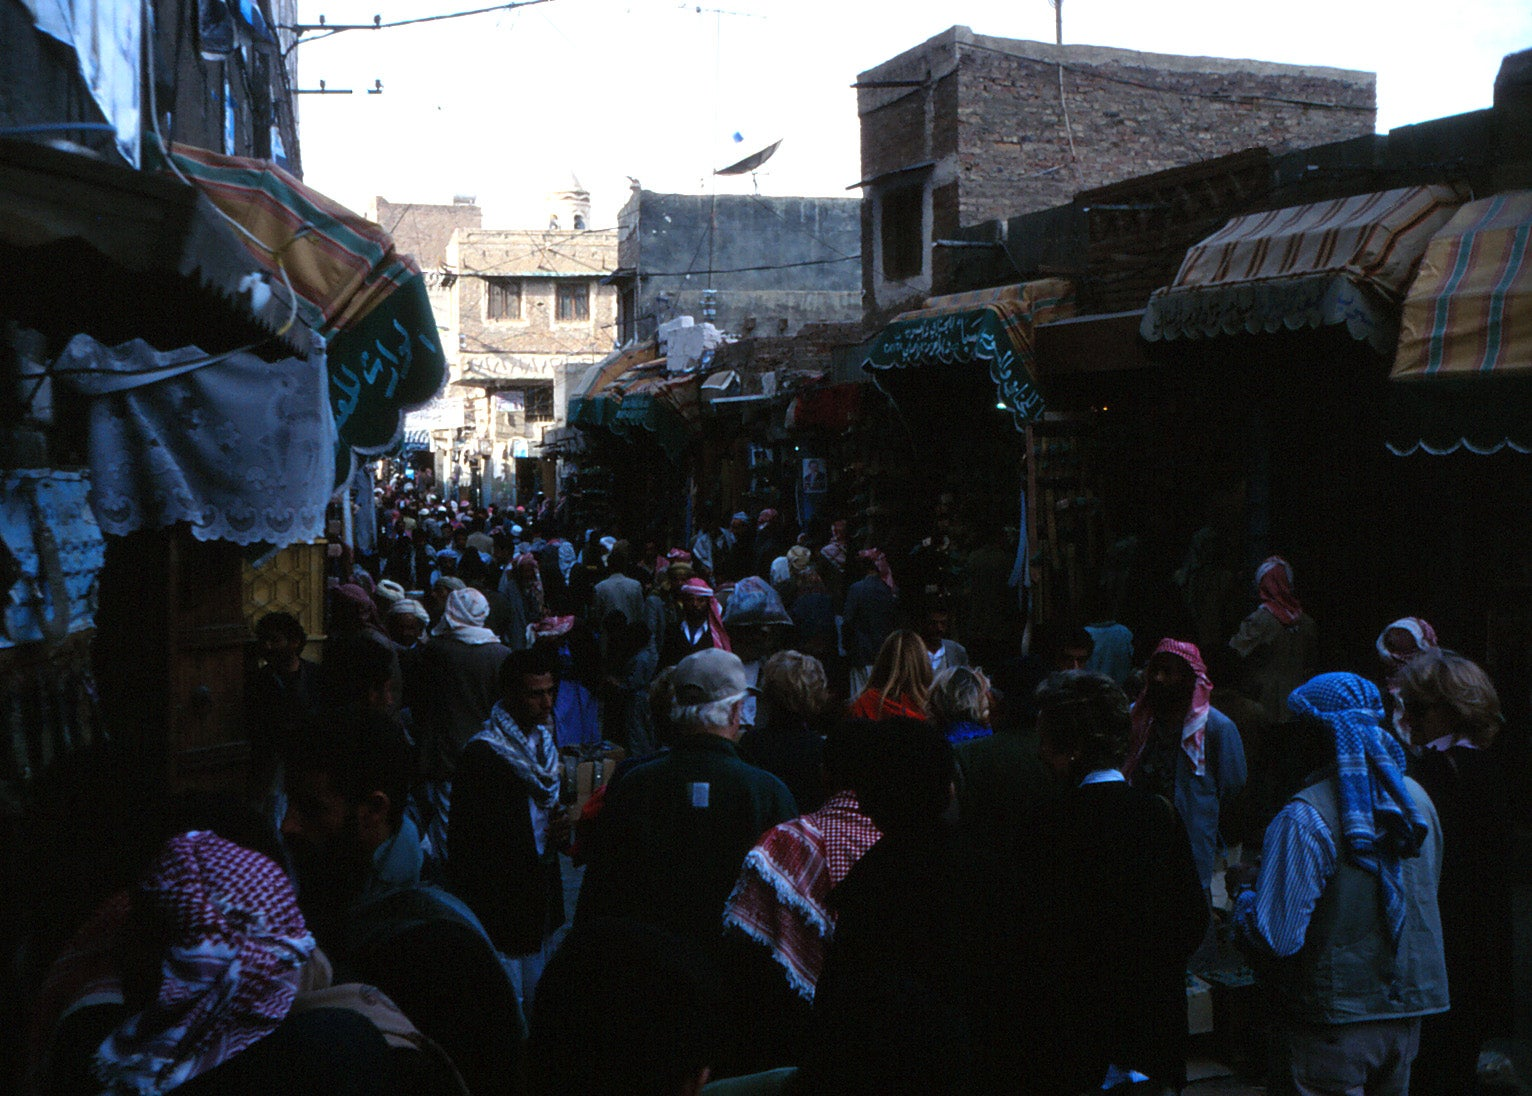 Multitud en Mercado de Sanaa